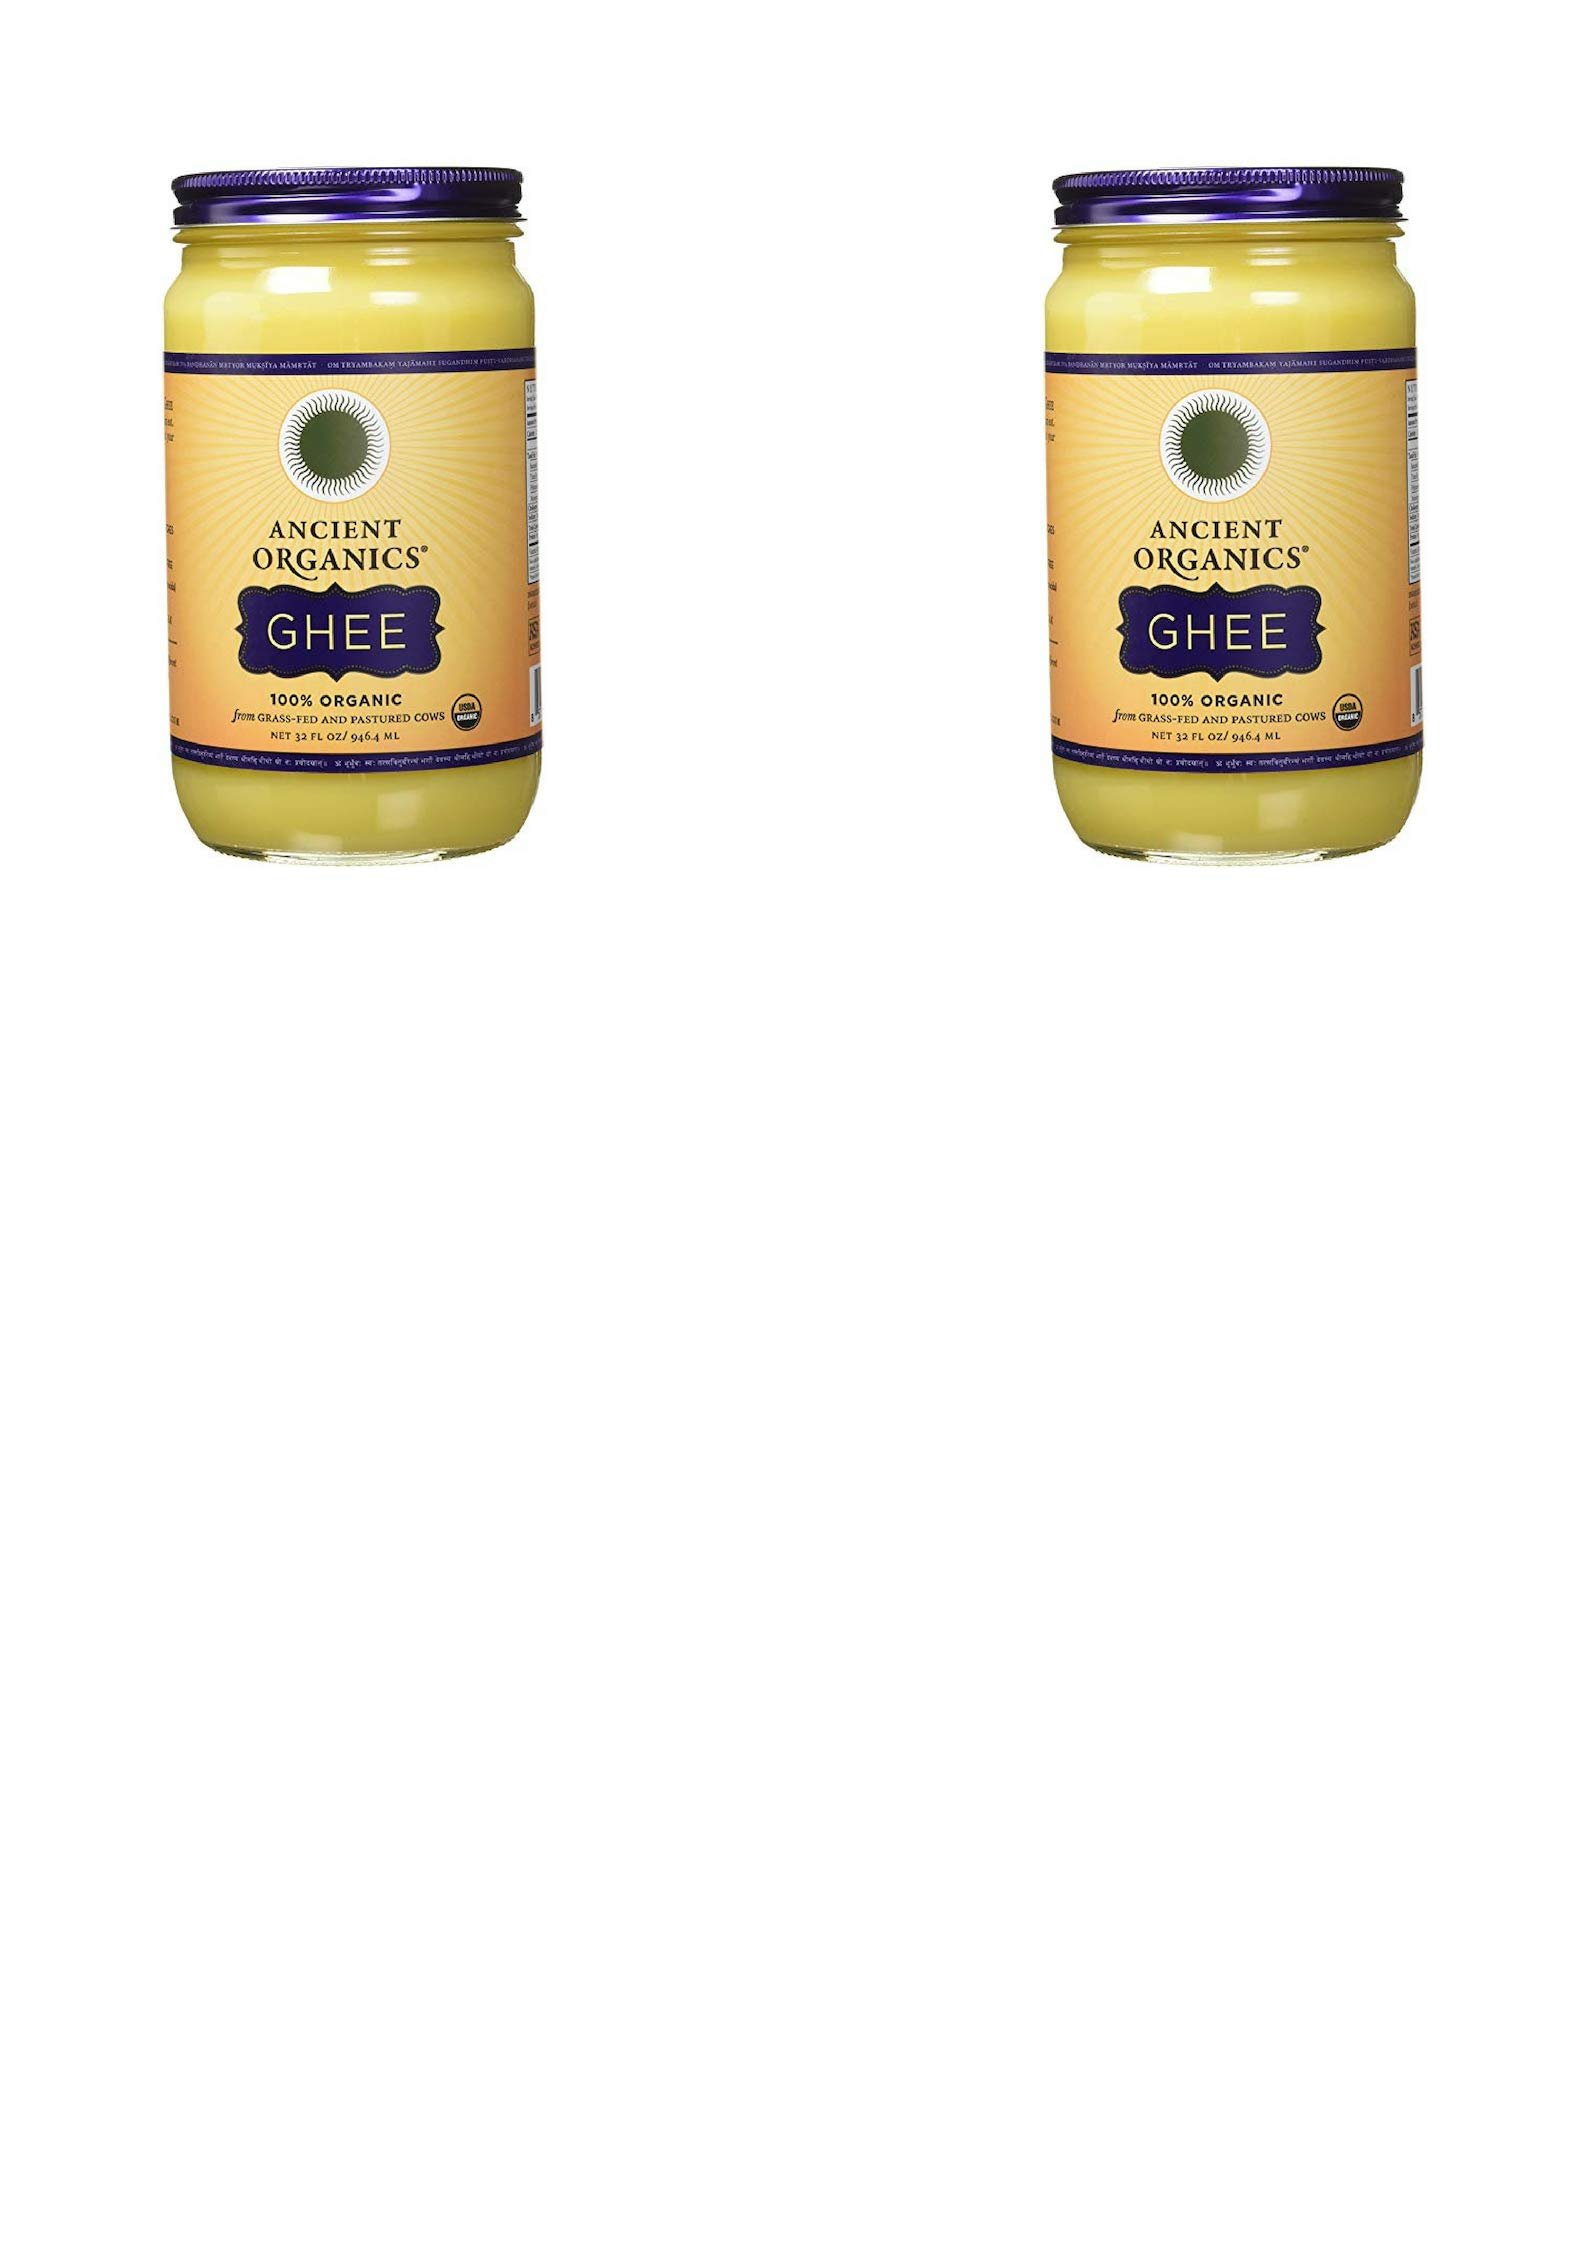 ANCIENT ORGANICS 100% Organic Ghee from Grass-fed Cows, 32oz (2 pack)